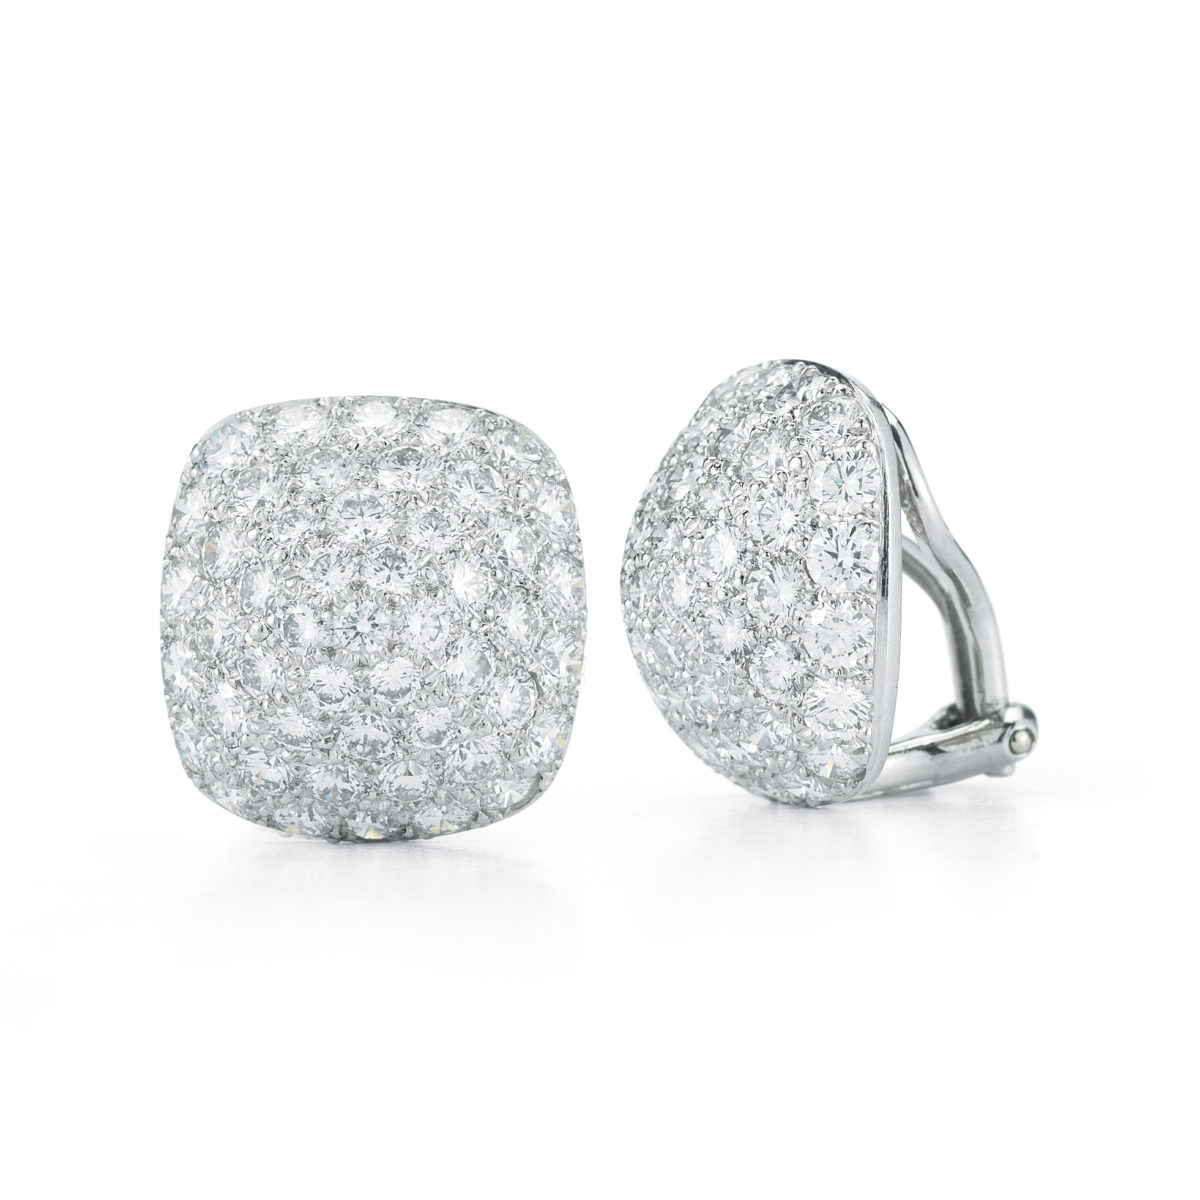 Oscar Heyman Brothers Diamond Earrings